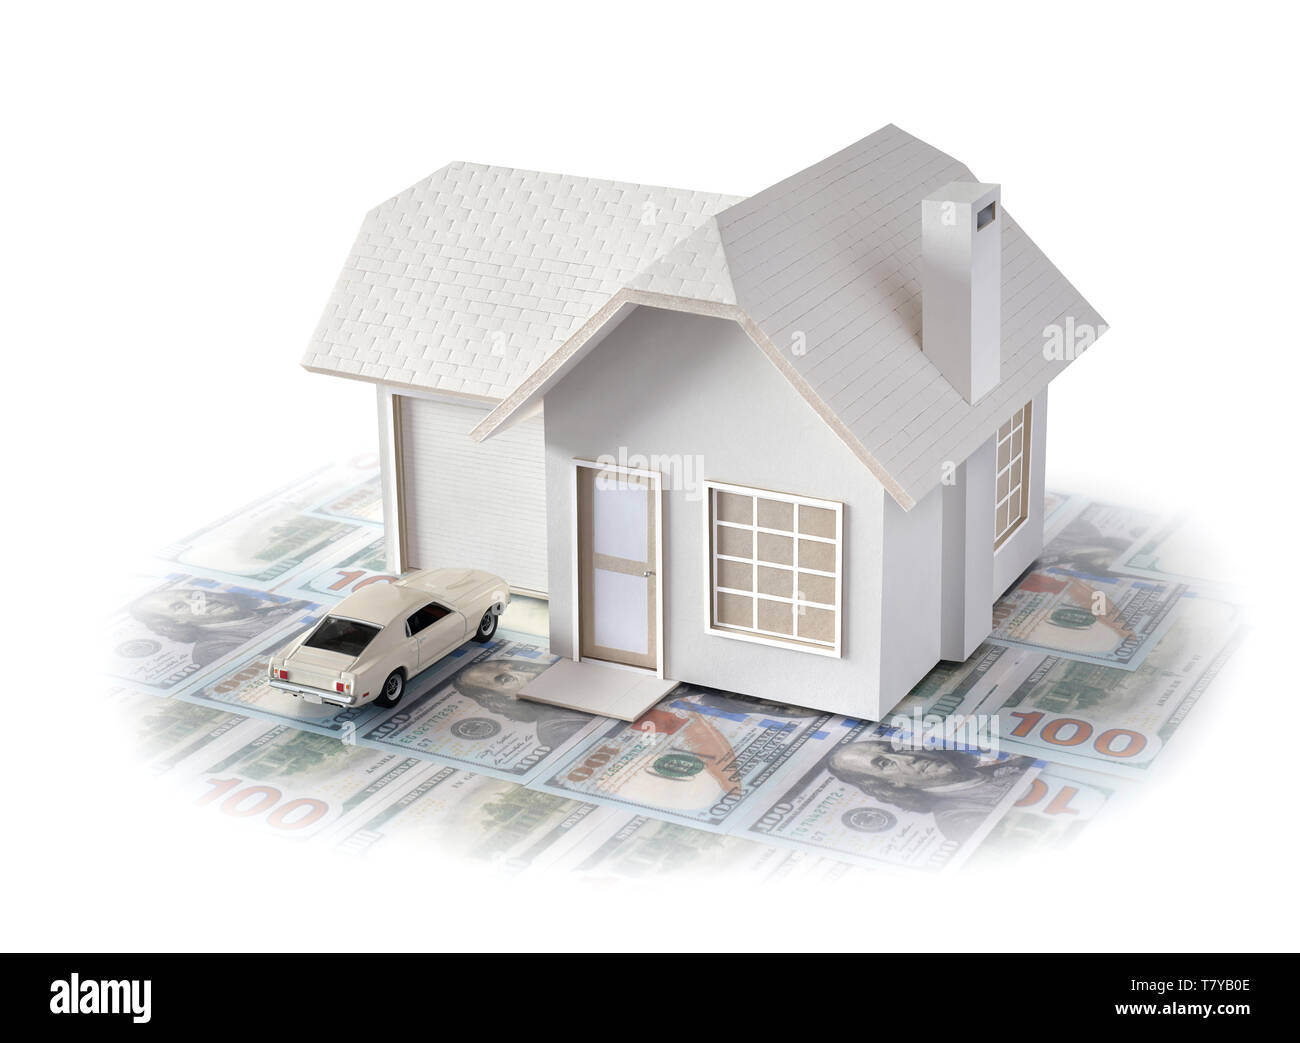 House miniature w/ car on U.S. dollar bills isolated in white background for real estate & construction concepts. House miniature made by contributor - Stock Image